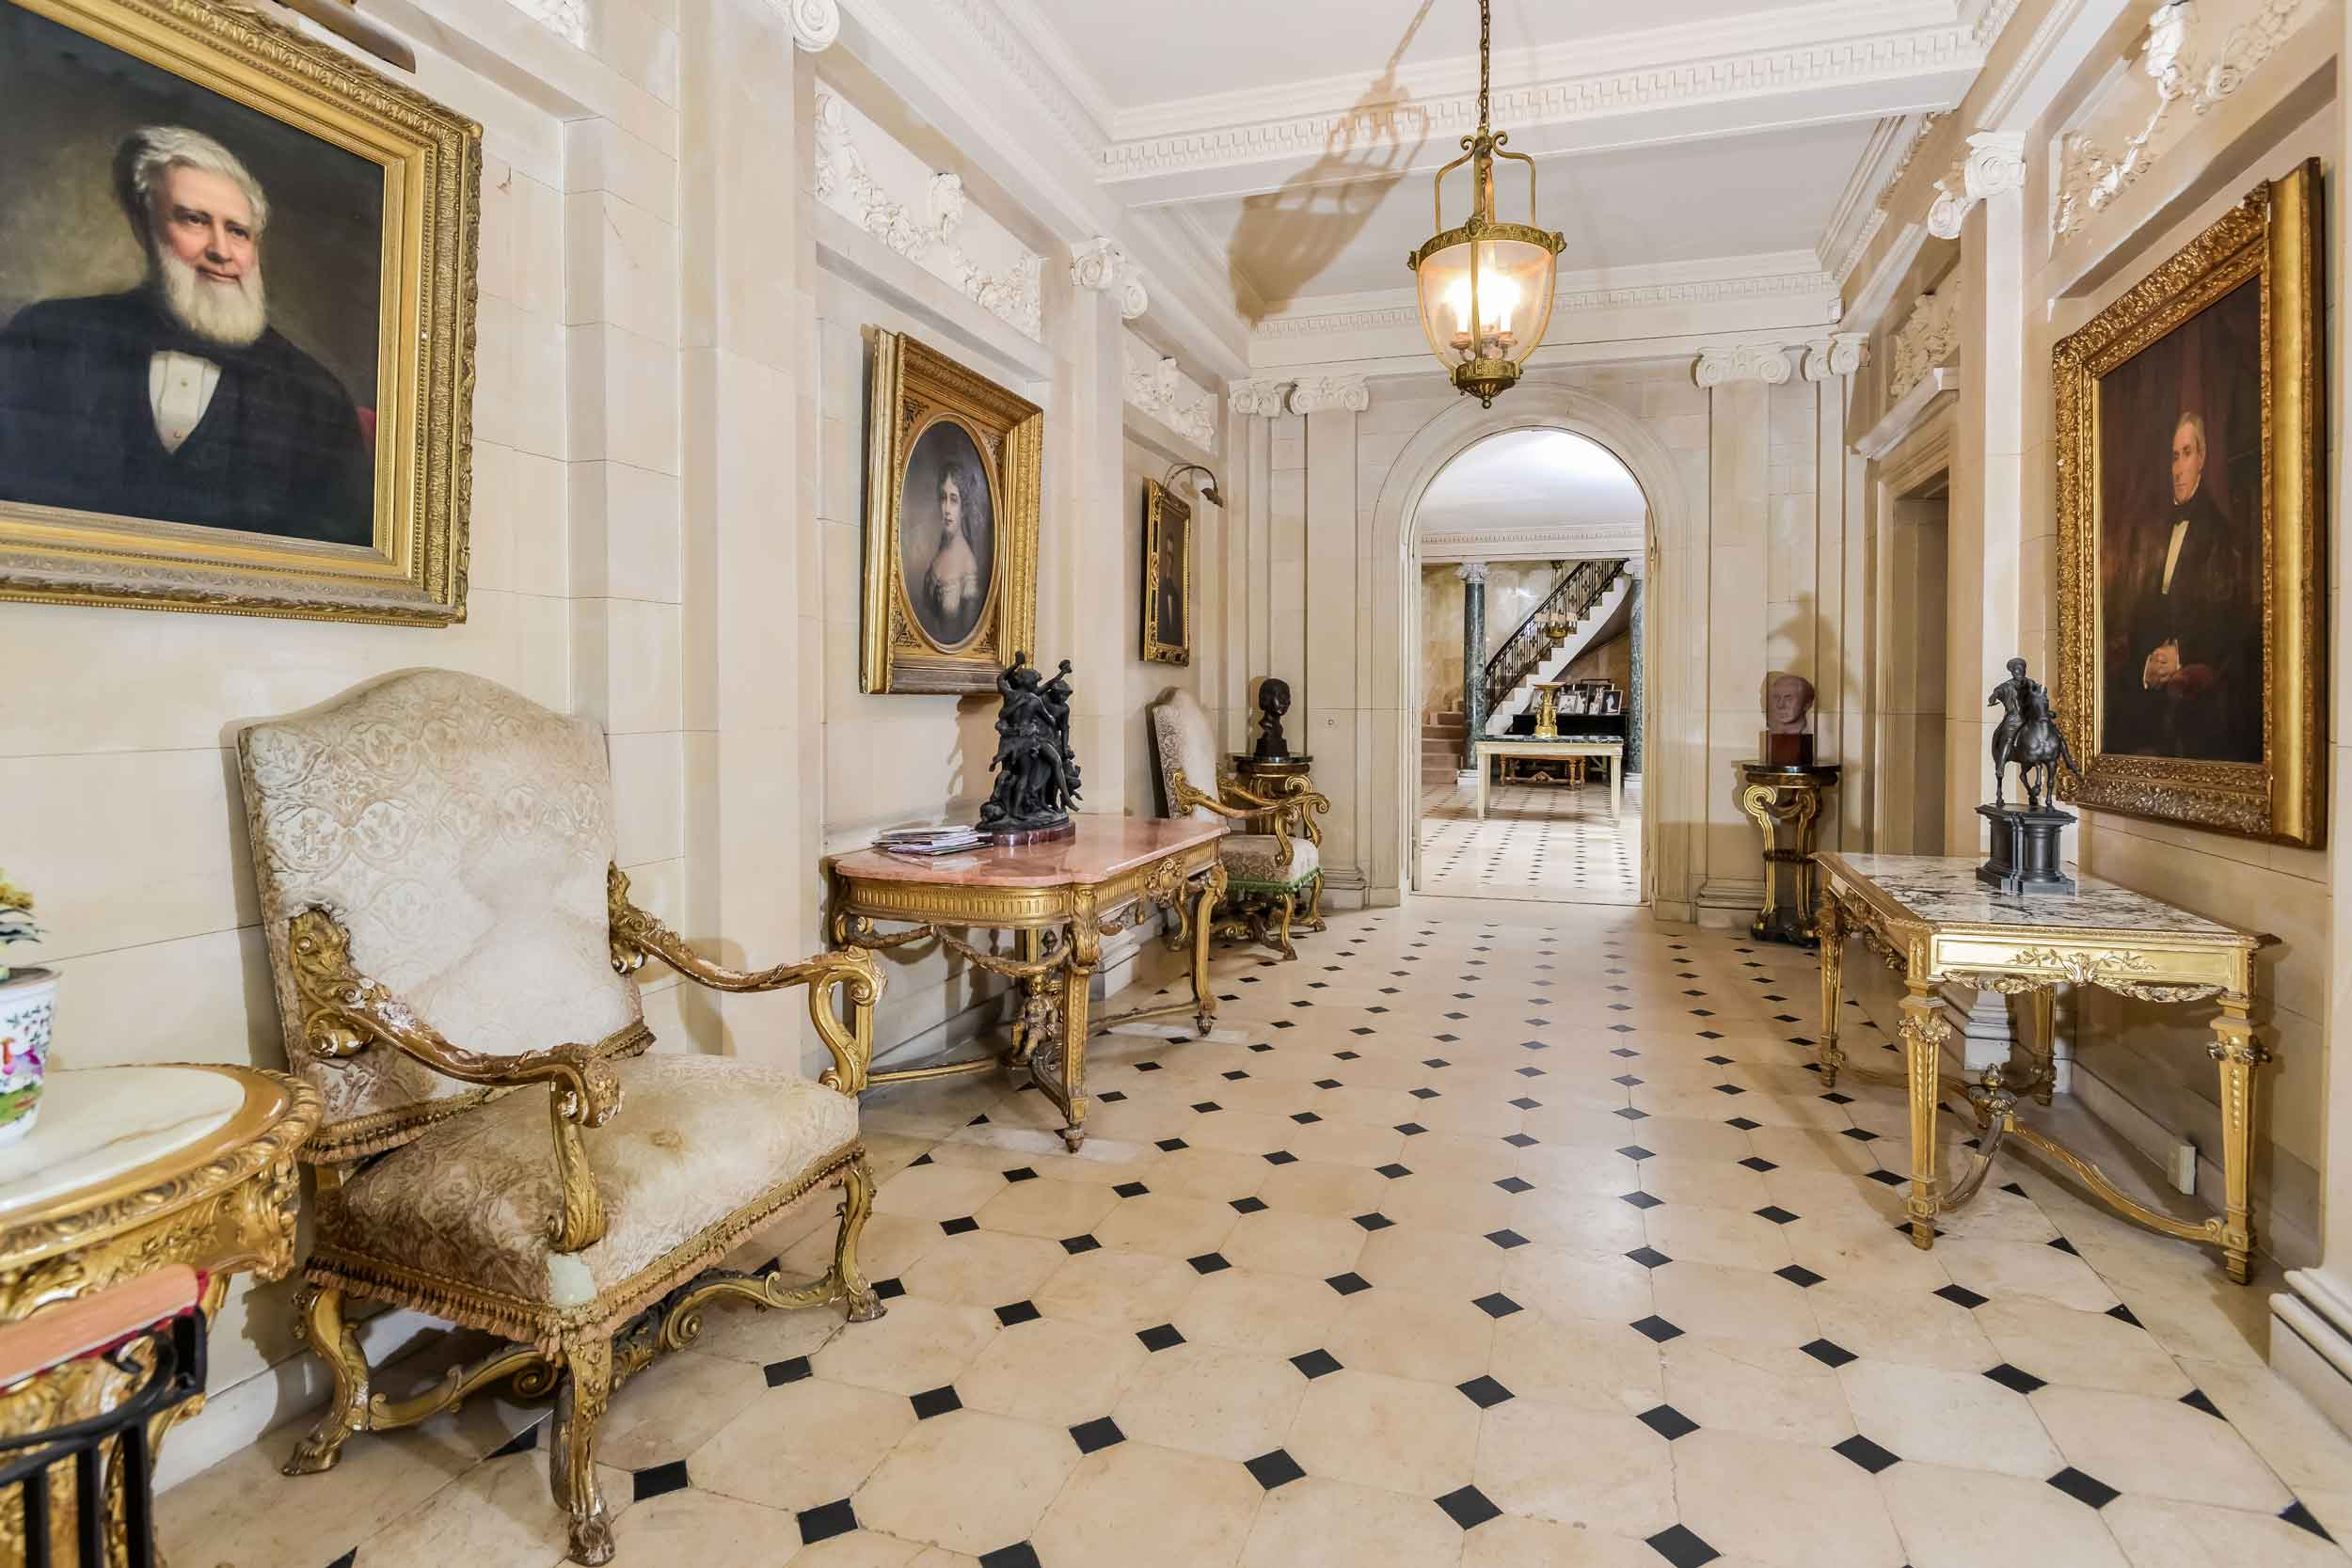 The Harold Brown Villa has an elegant exterior crafted from stone, with a formal interior executed in classical French Empire style. The sumptuous finishes include marble floors and Ionic columns and intricate wood paneling and millwork.